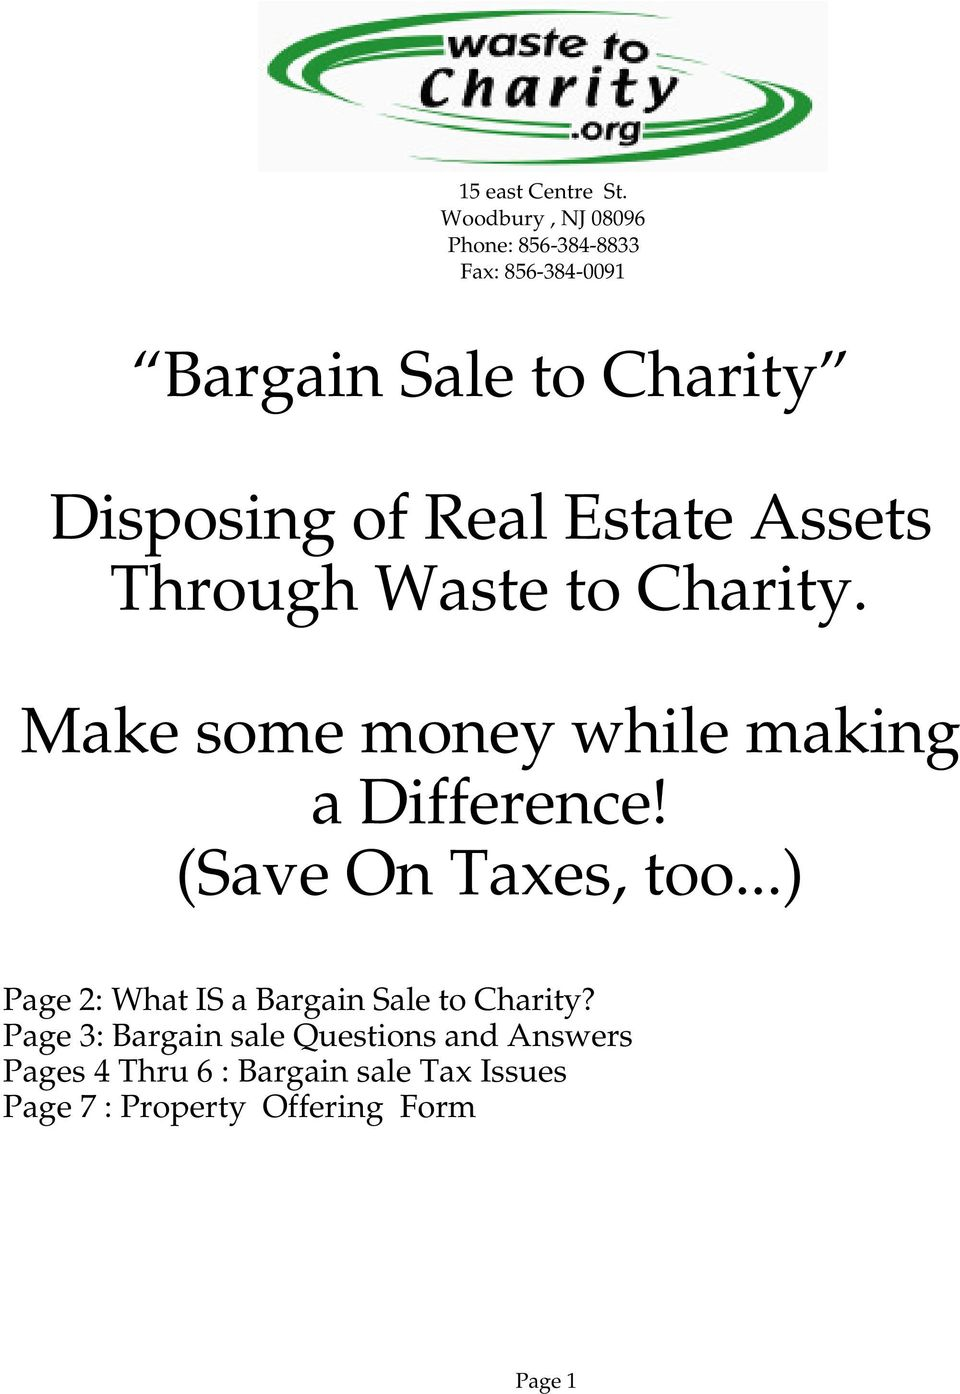 ..) Page 2: What IS a Bargain Sale to Charity?